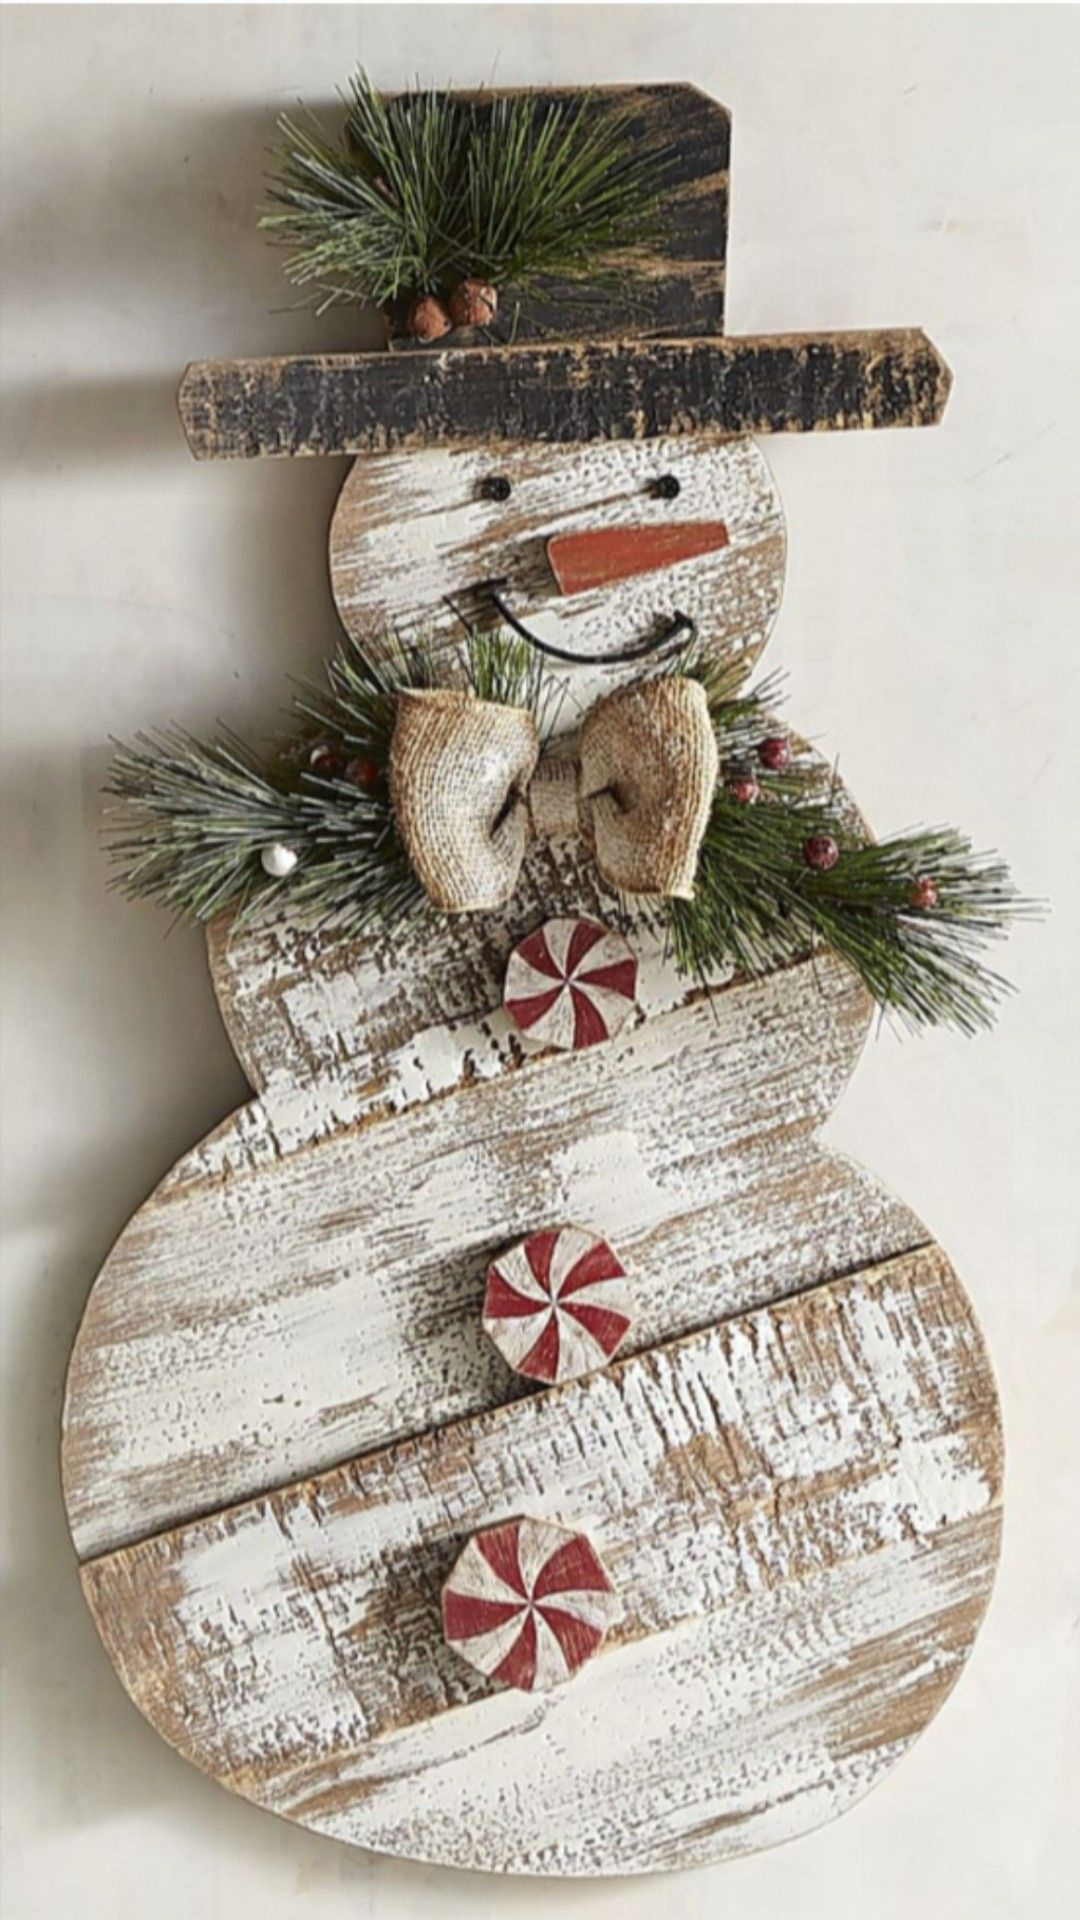 Pin By Shyenna Engel On Christmas Holidaze Winter Wood Crafts Primitive Wood Crafts Christmas Wood Crafts